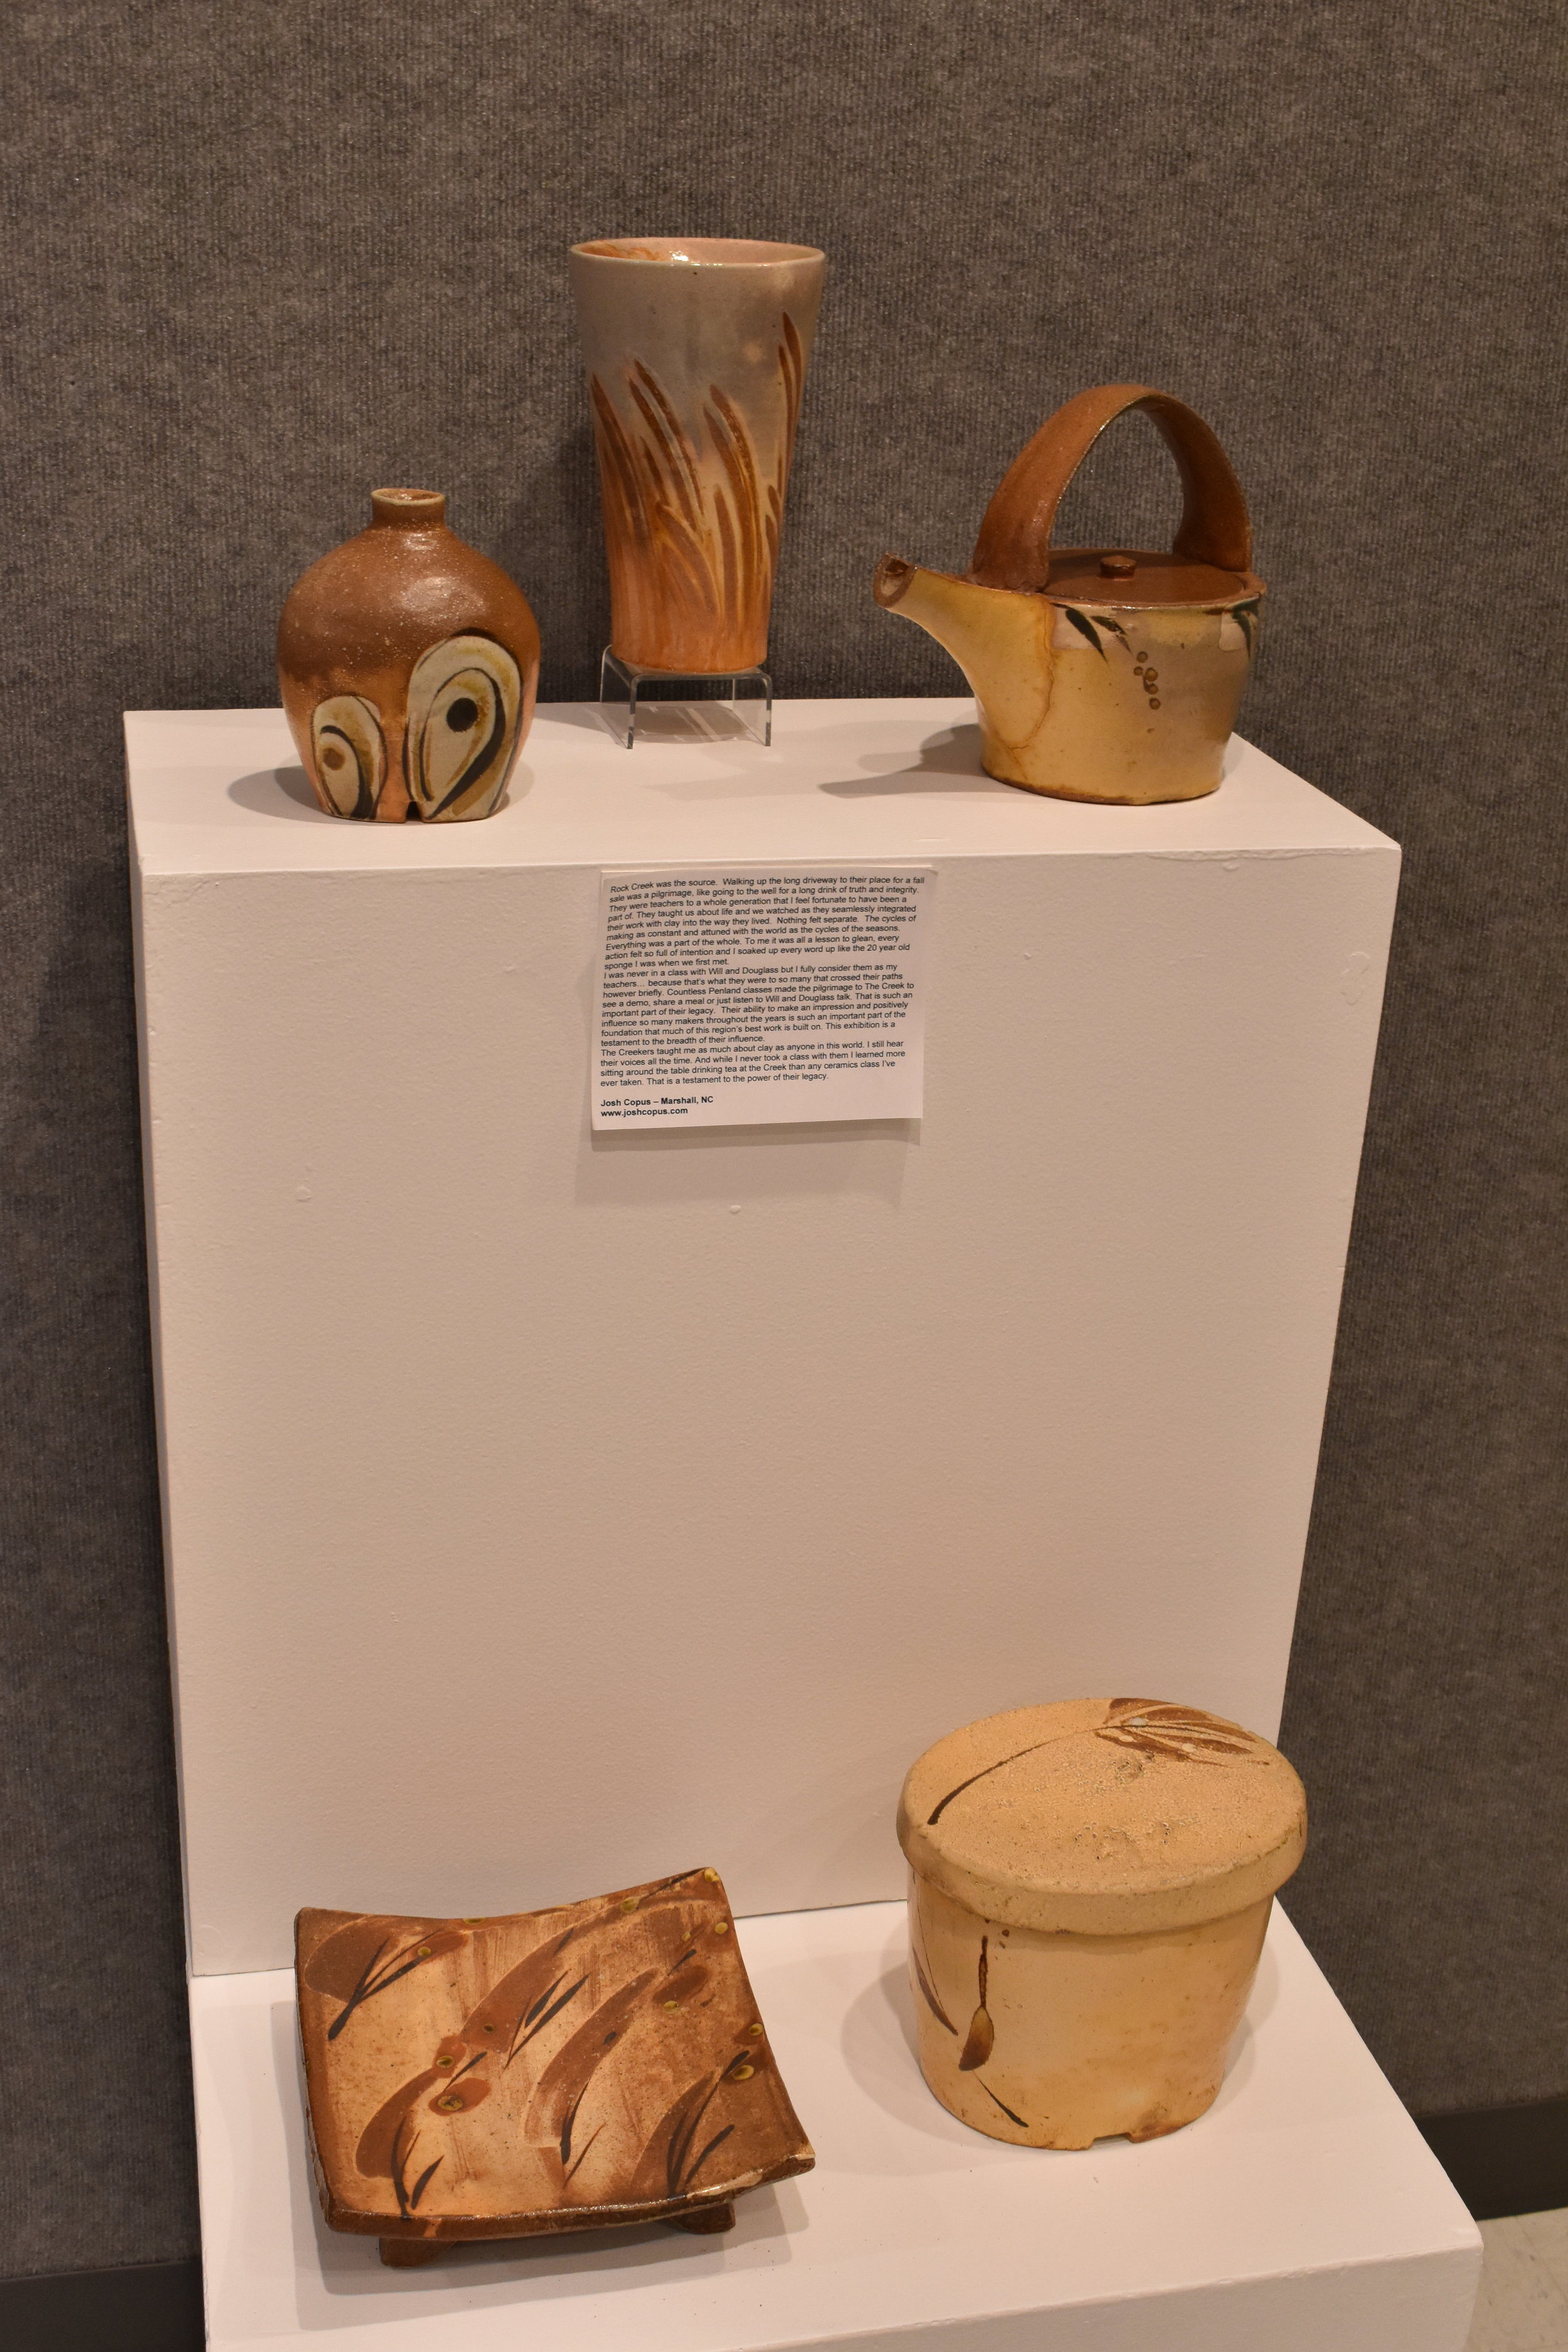 Pots contributed by Josh Copus. The vase at top center is his work, and the rest are from his personal collection.